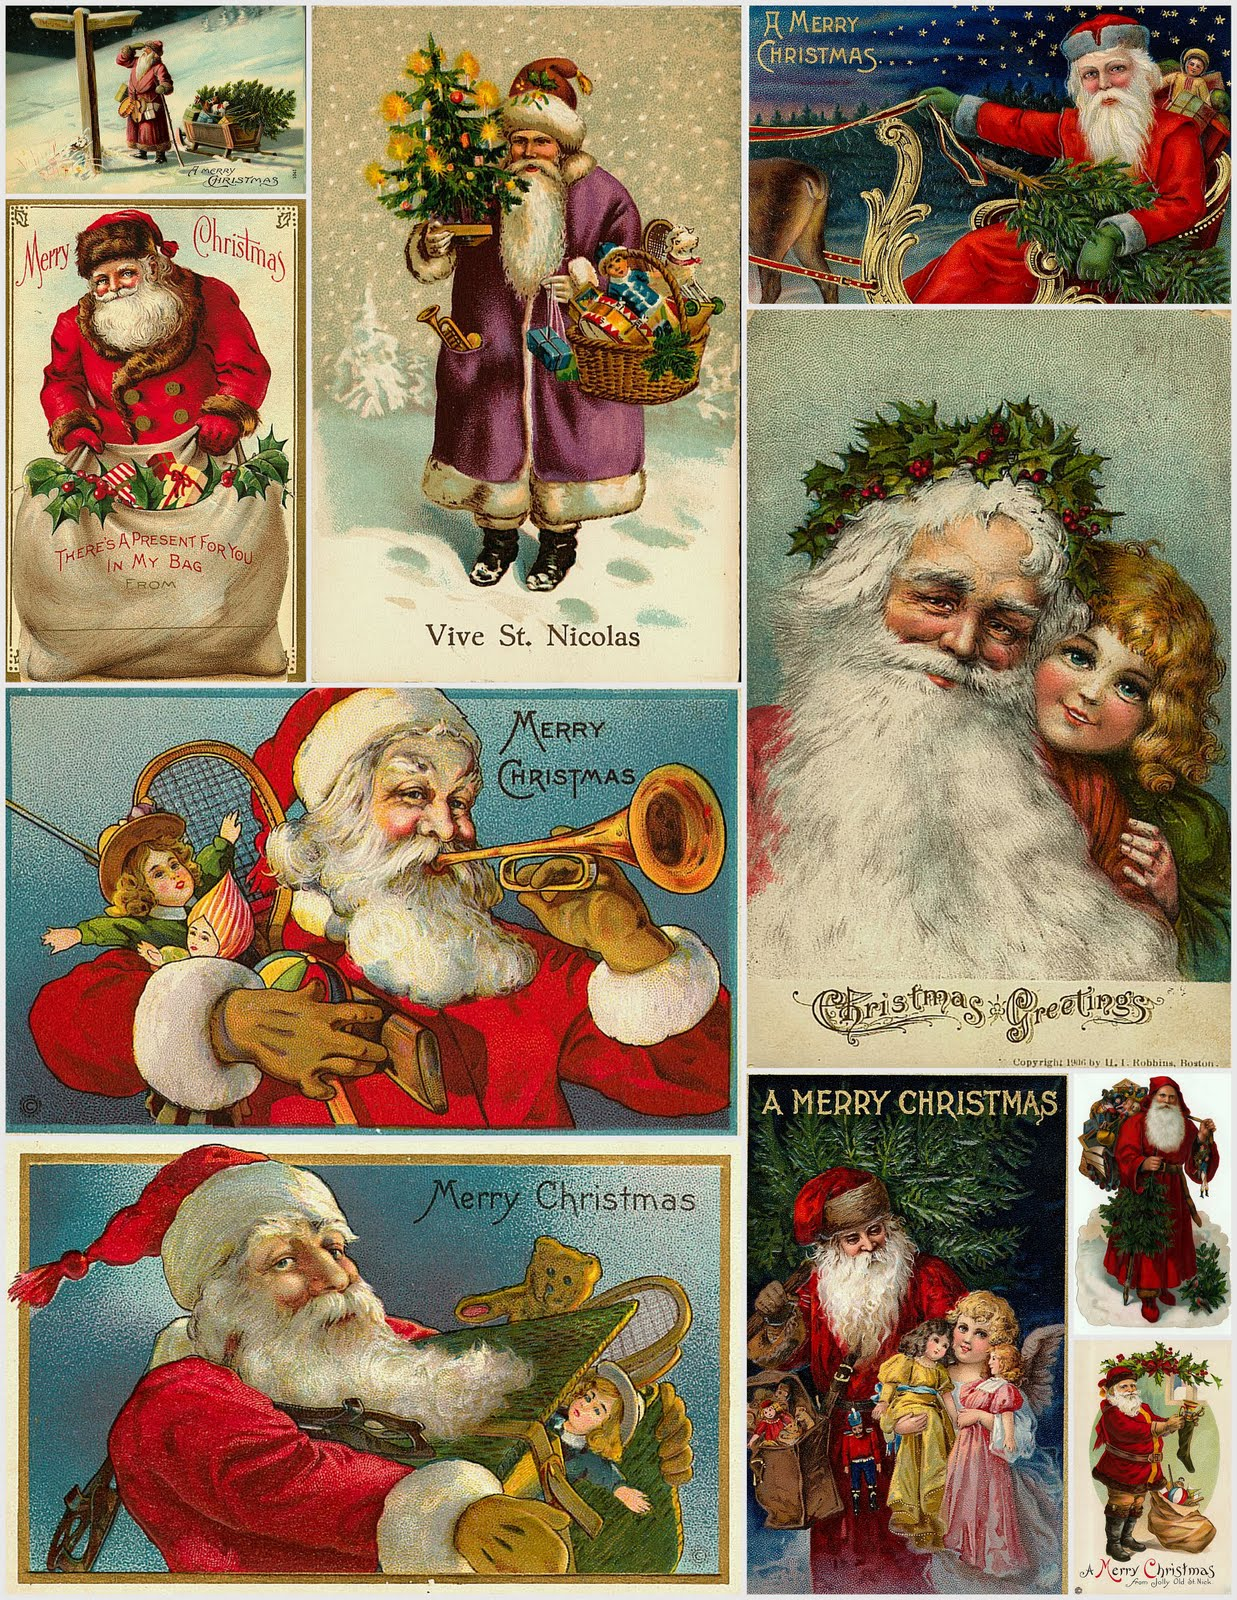 Magic Moonlight Free Images Christmas Collages For You